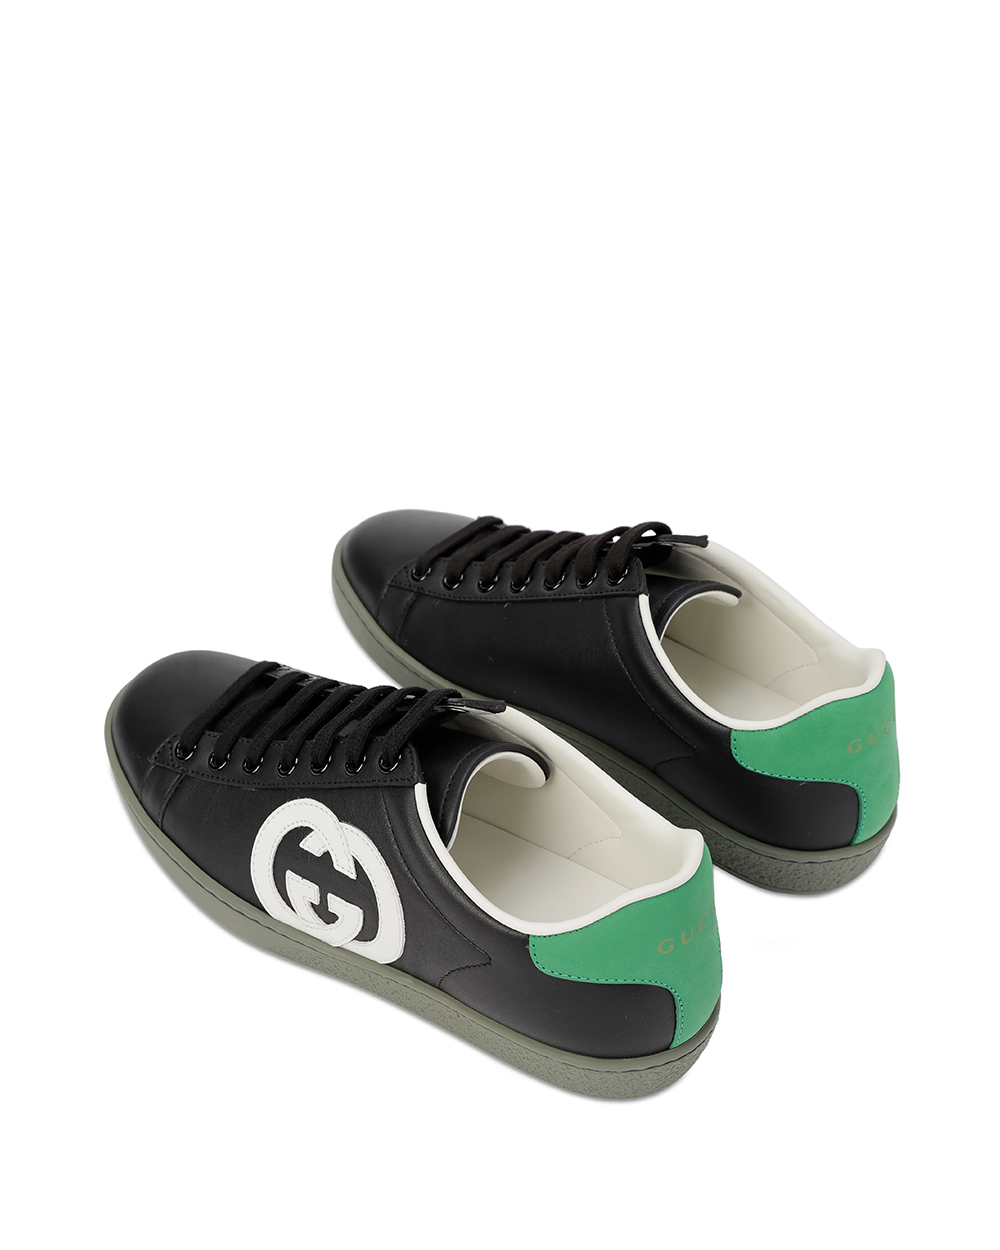 GG Leather Sneakers 2